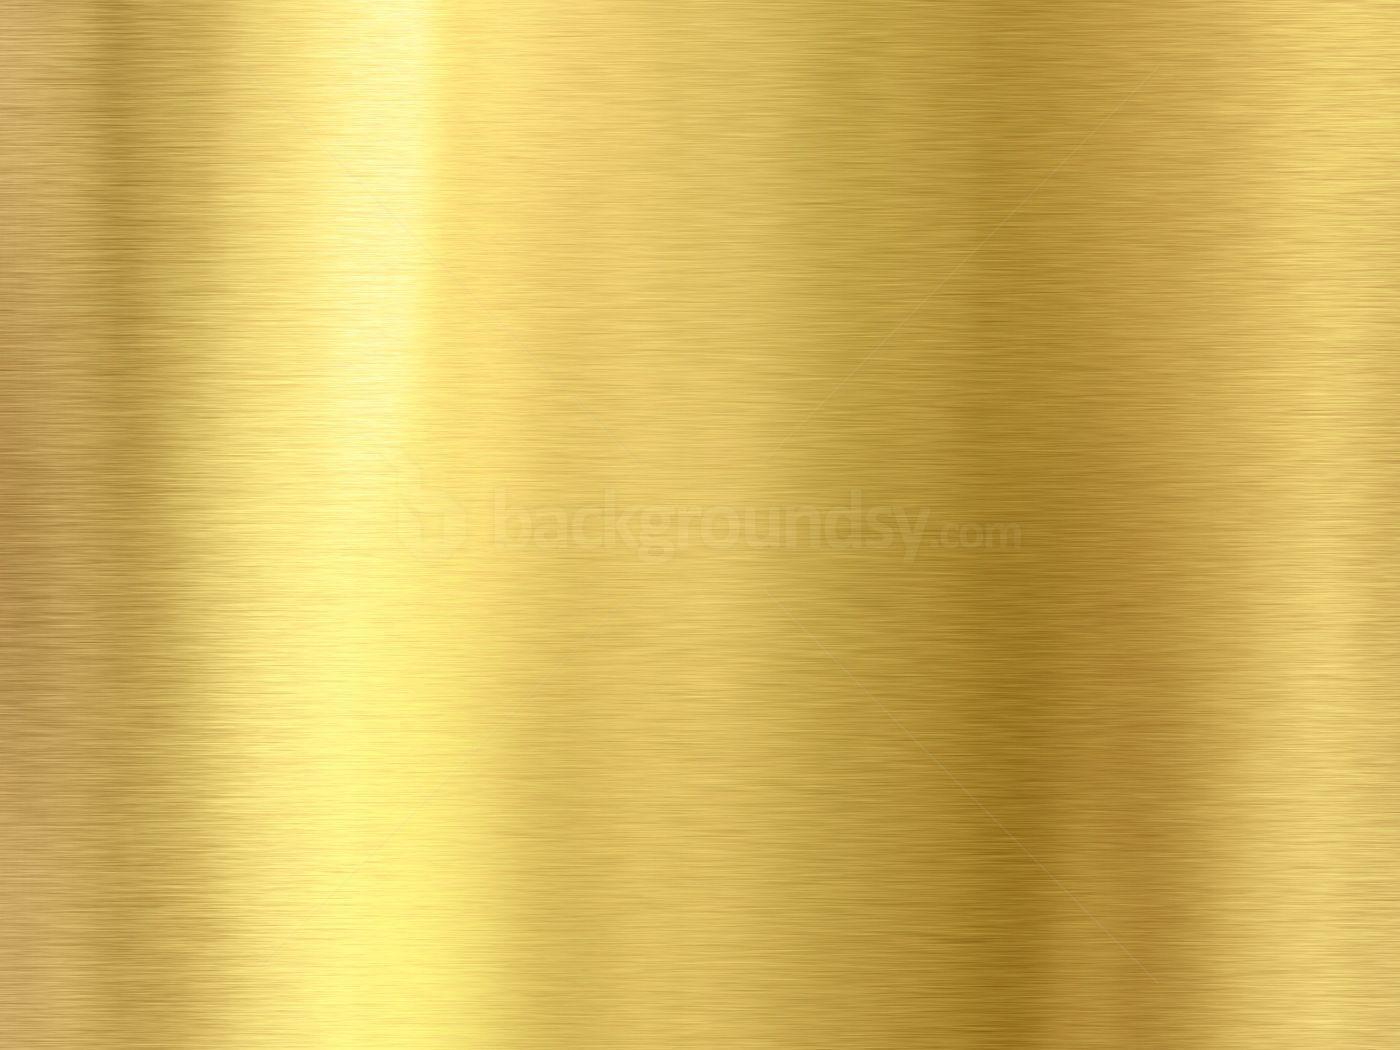 Gold Color Backgrounds - Wallpaper Cave